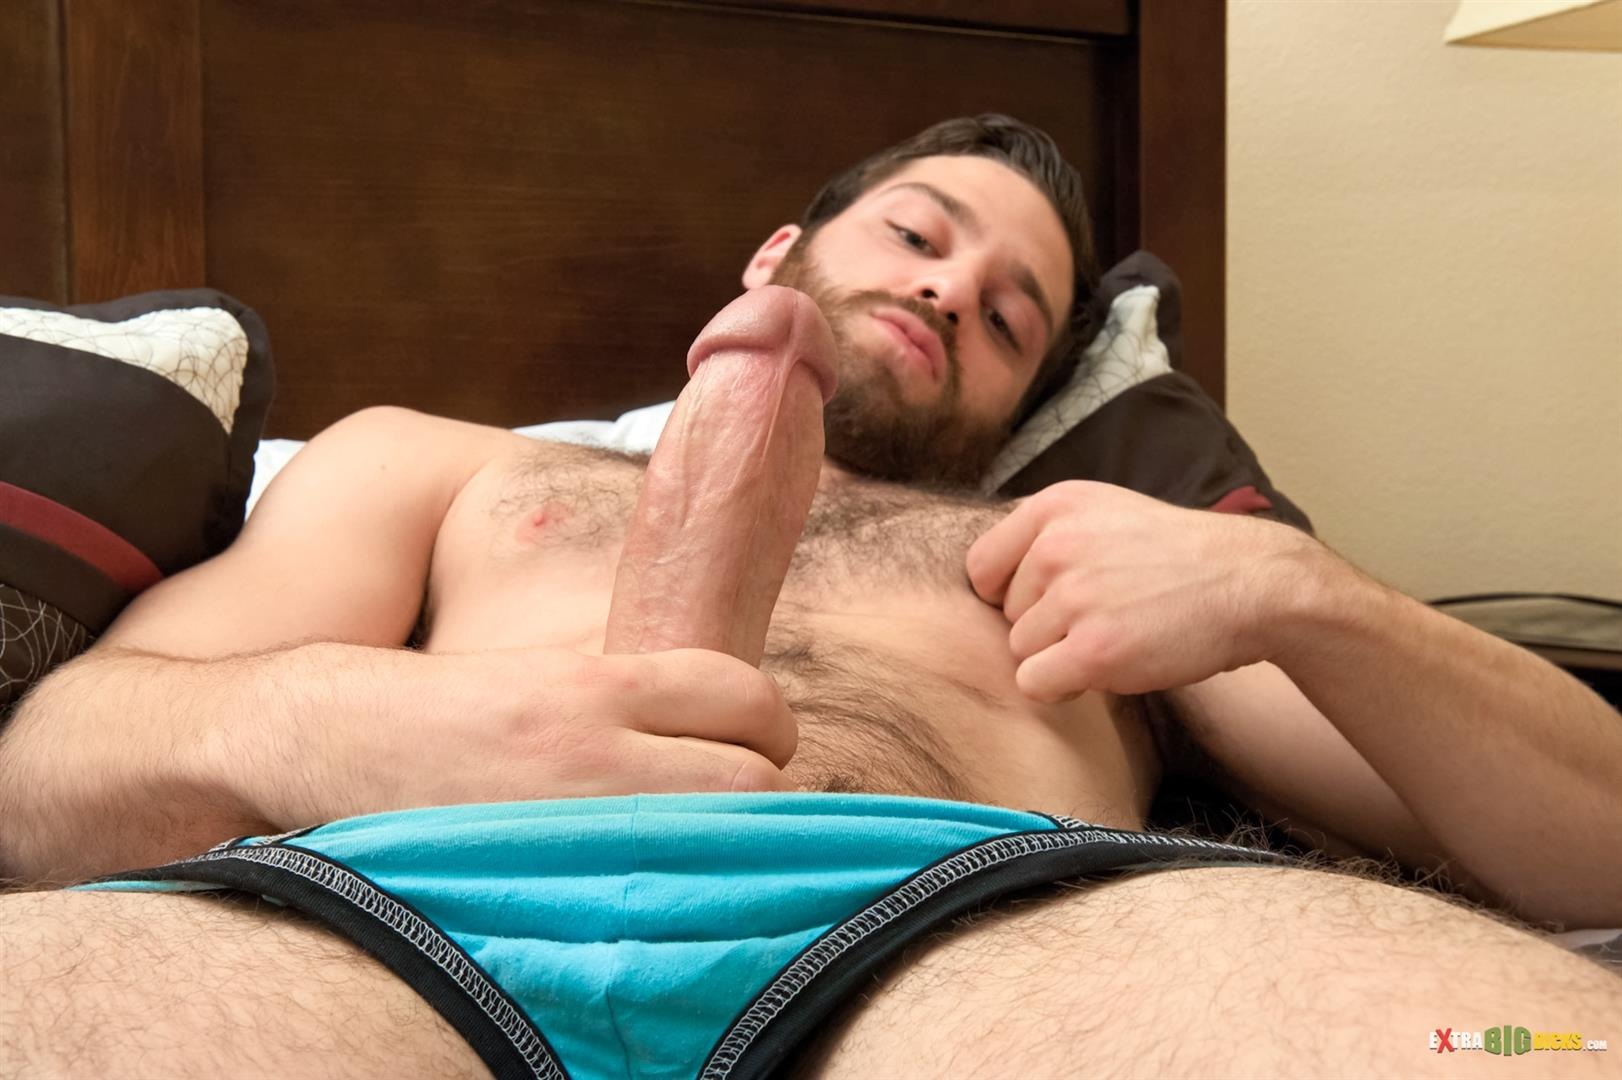 Extra-Big-Dicks-Tommy-Defendi-Hairy-Muscle-Guy-Jerking-Off-Amateur-Gay-Porn-06 Hairy Muscle Stud Tommy Defendi Jerking Off His Big Thick Cock